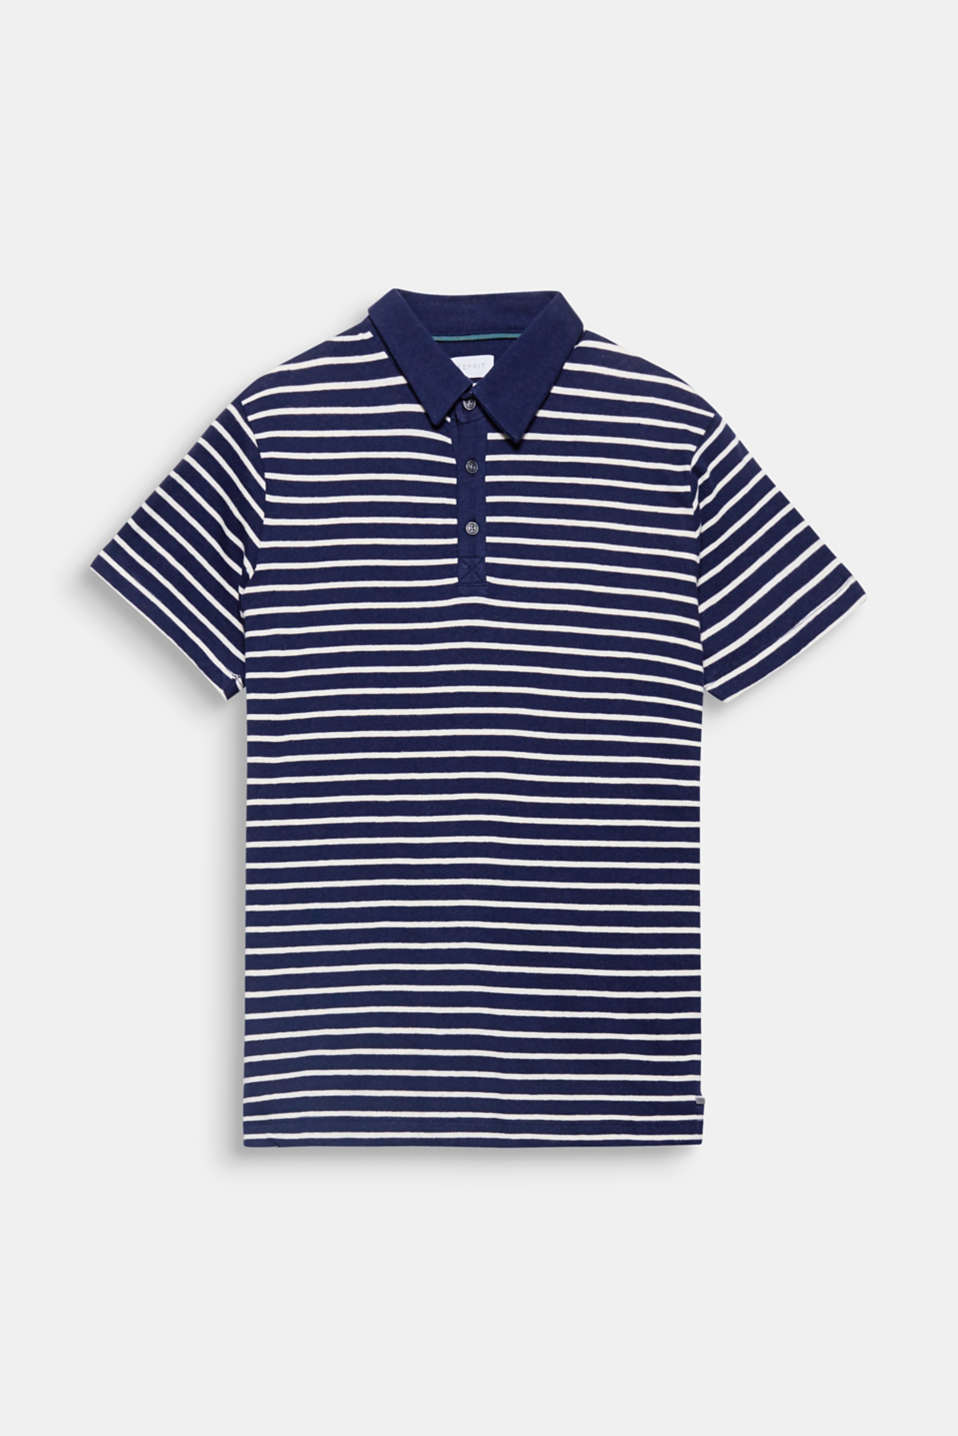 The sporty stripes and airy fabric blend with linen make this a polo shirt a summer favourite.